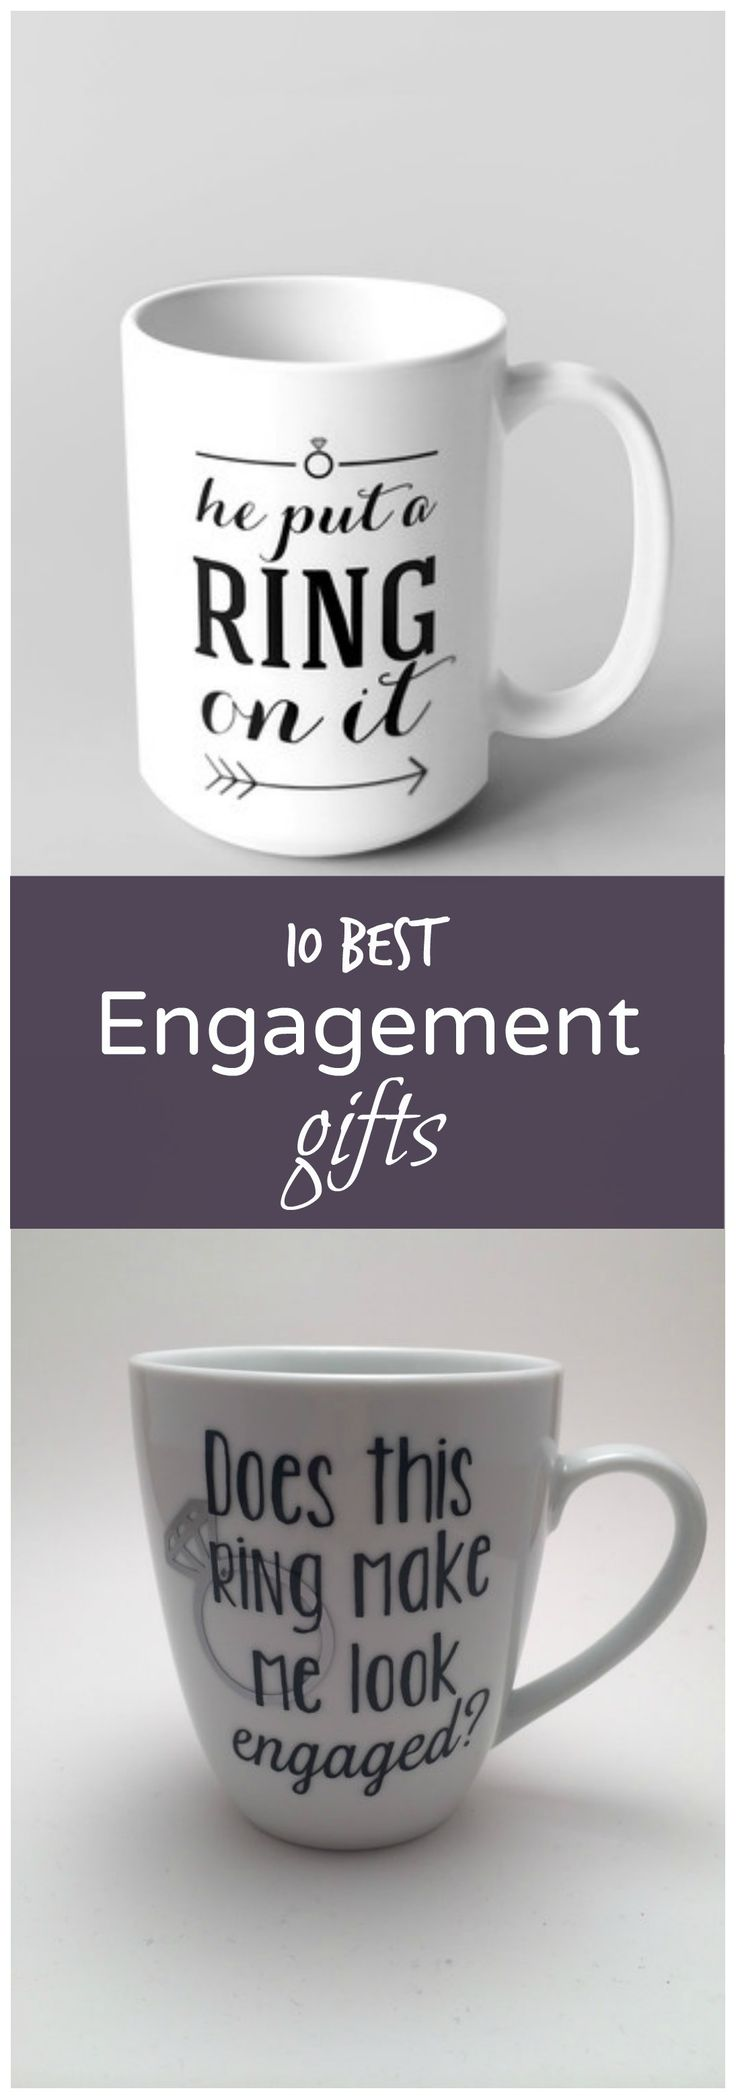 It's going to be her big day and you are out of ideas on what to gift? Well, we've had our share of hits and misses to know what's best for her. Listed here are the toppers from our hit-list of innovative #engagement gifts for her.